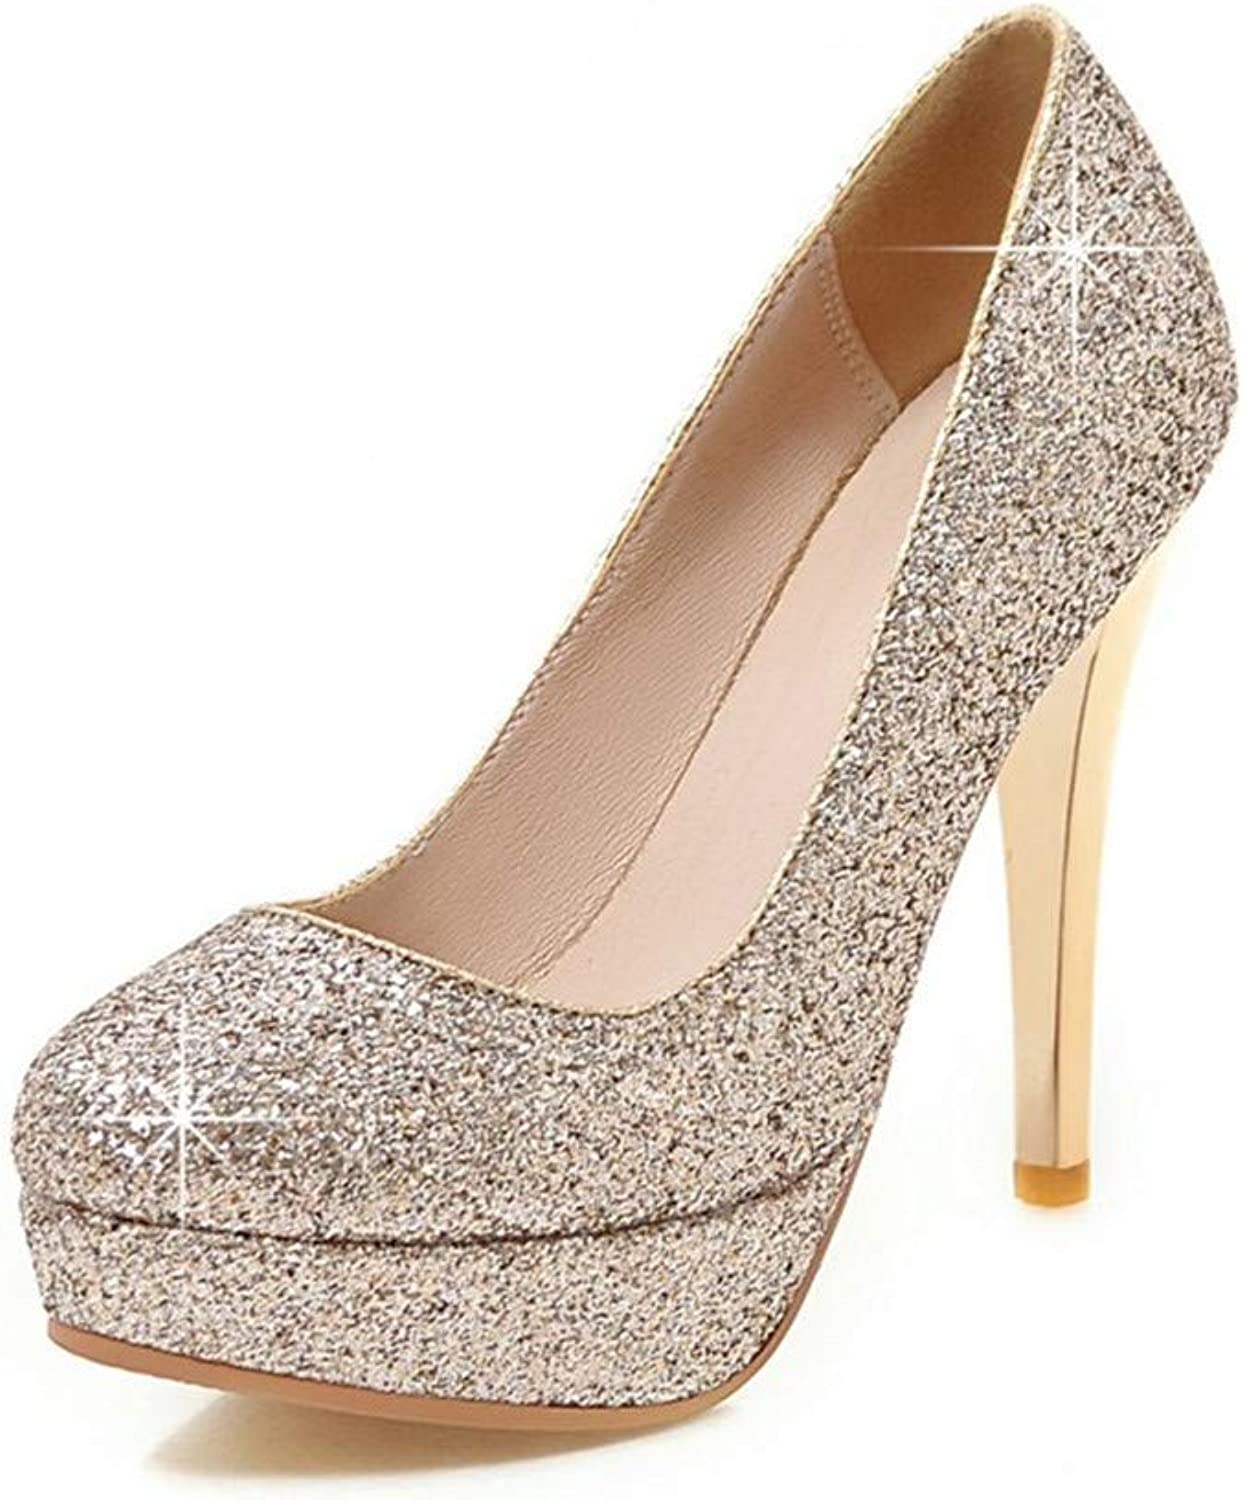 Round Toe Platform shoes Woman Sexy Sequined Upper High Heels Party Wedding Pumps